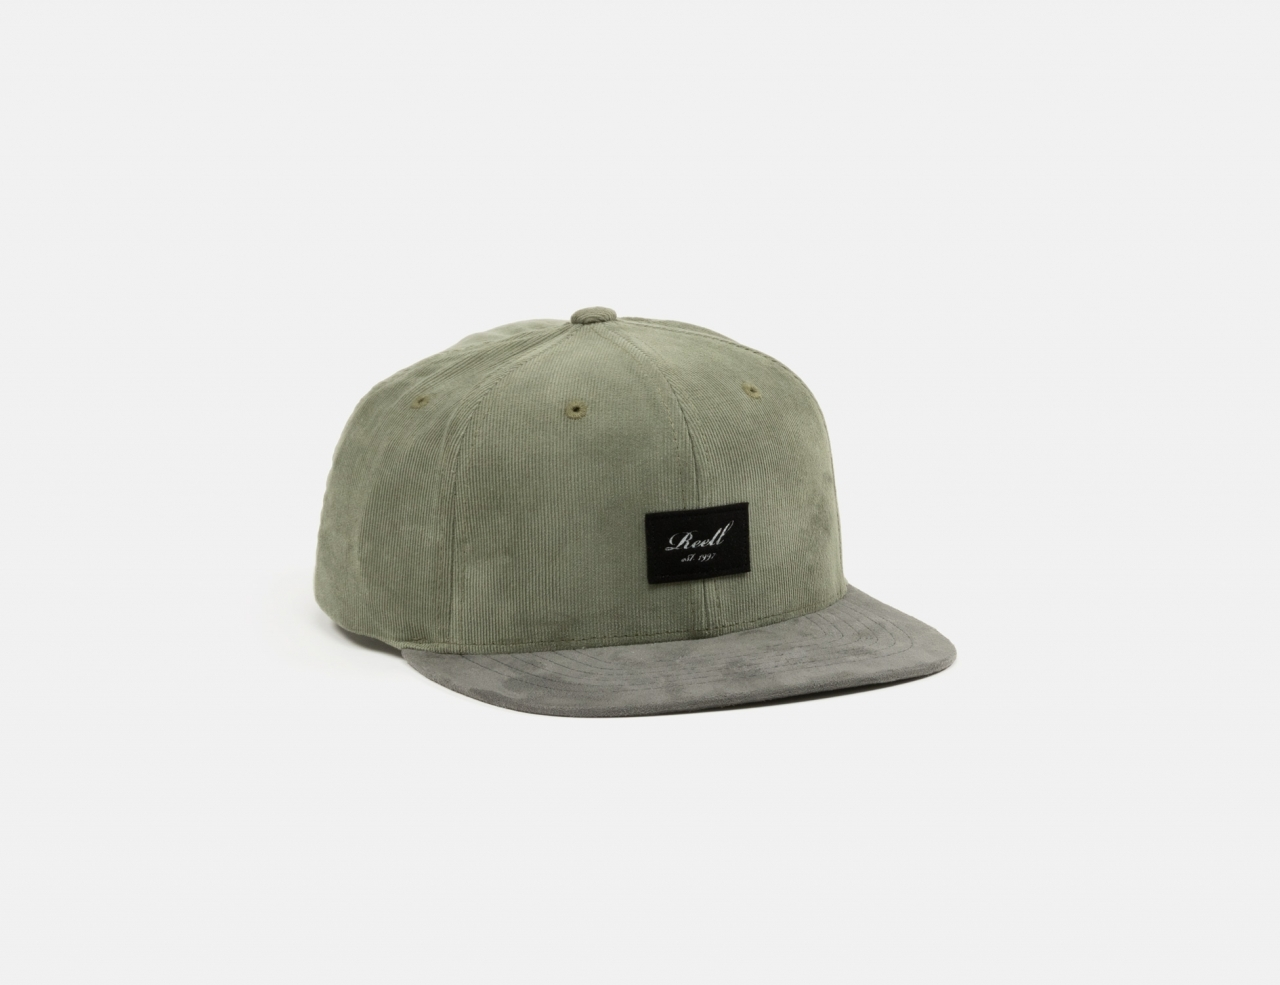 Reell Jeans Suede Cap - Grey Green Ribcord